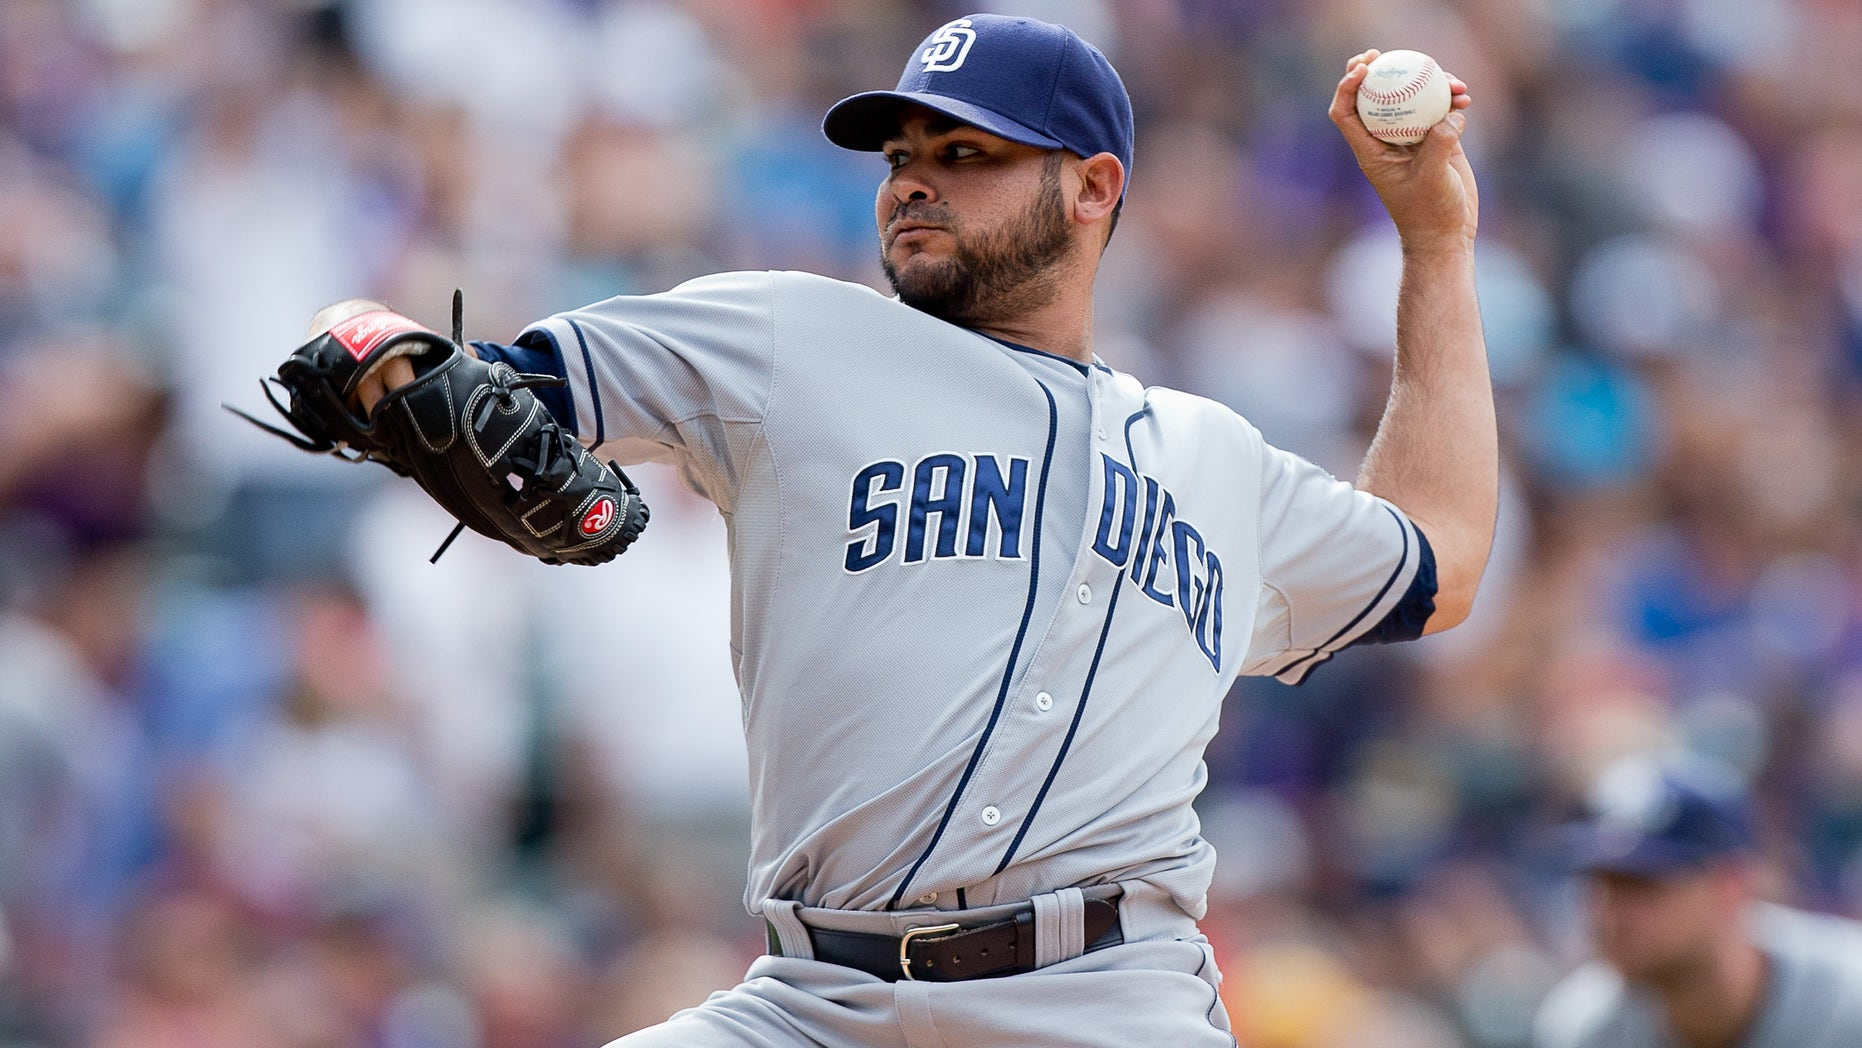 DENVER, CO - MAY 18:  Relief pitcher Alex Torres #54 of the San Diego Padres delivers to home plate during the seventh inning against the Colorado Rockies at Coors Field on May 18, 2014 in Denver, Colorado. The Rockies defeated the Padres 8-6 in 10 innings. (Photo by Justin Edmonds/Getty Images)